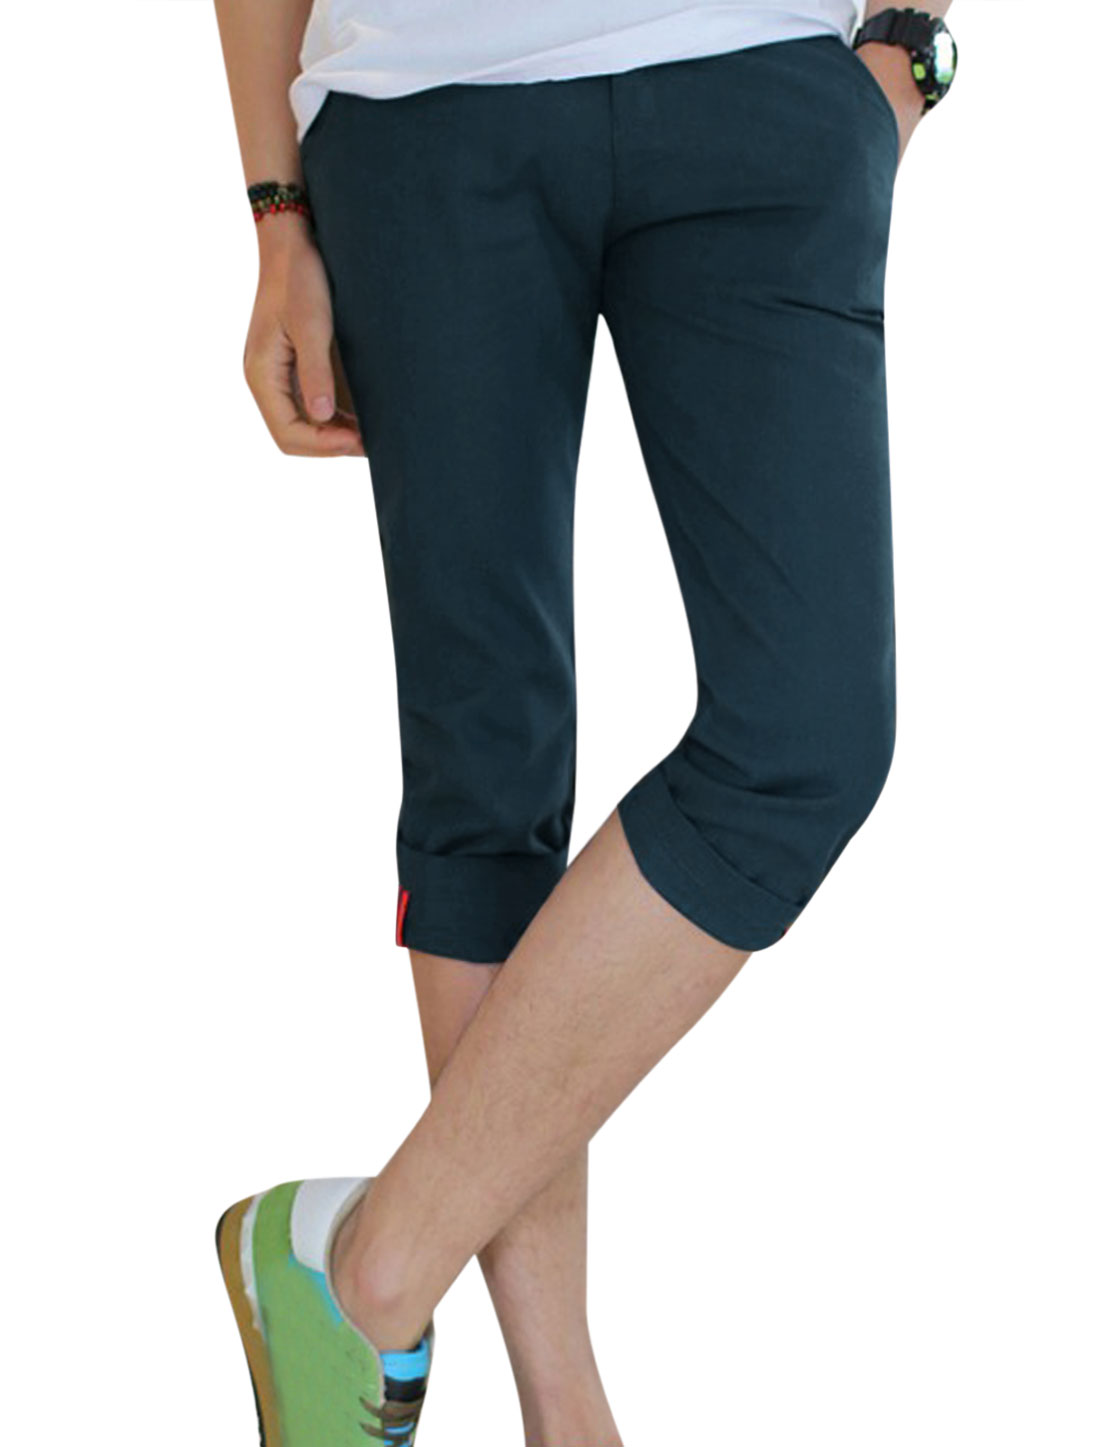 Men Roll-Up Cuffs Welt Pockets Back Slim Fit Linen Capris Navy Blue W30